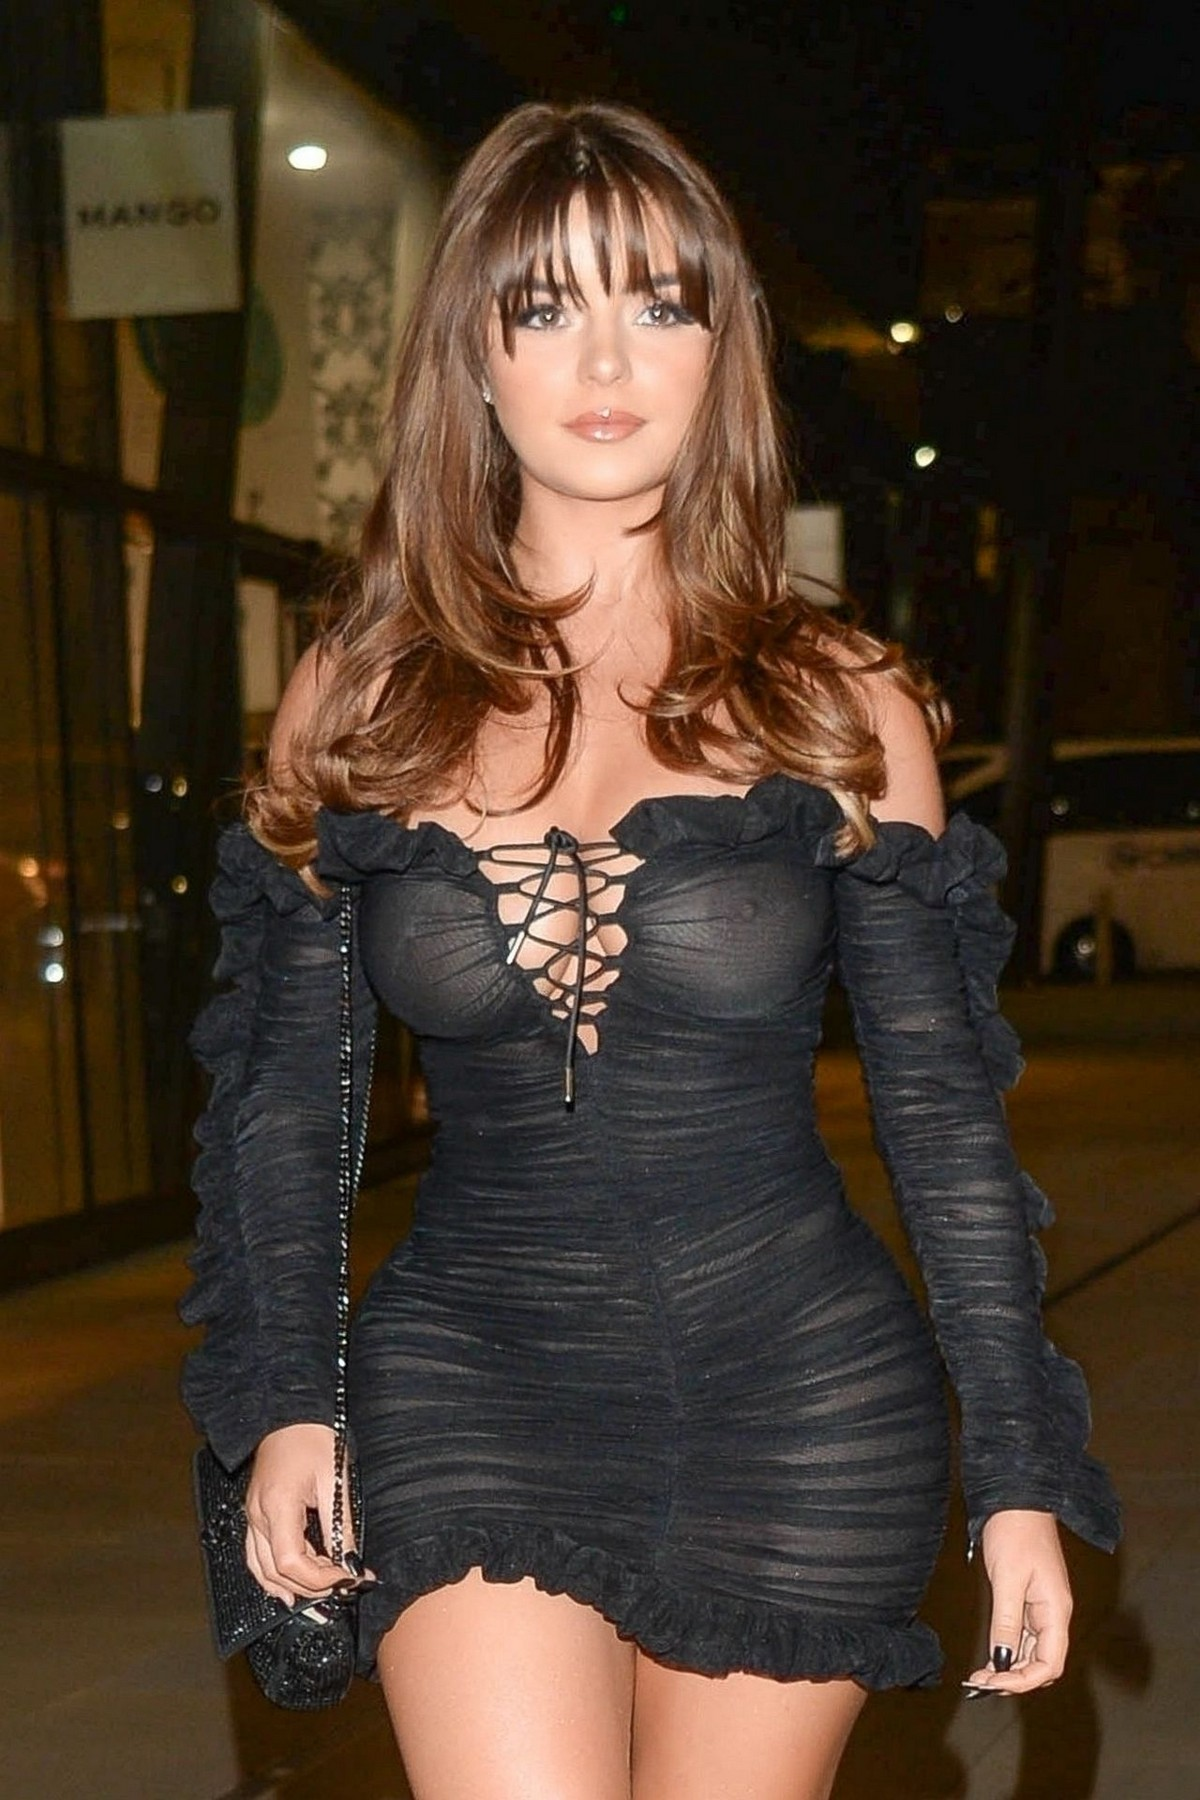 Demi Rose Mawby seen in Stylish Short Dress at The Skinny Tan Choc Range launch party in Madison, London 2019/11/19 17